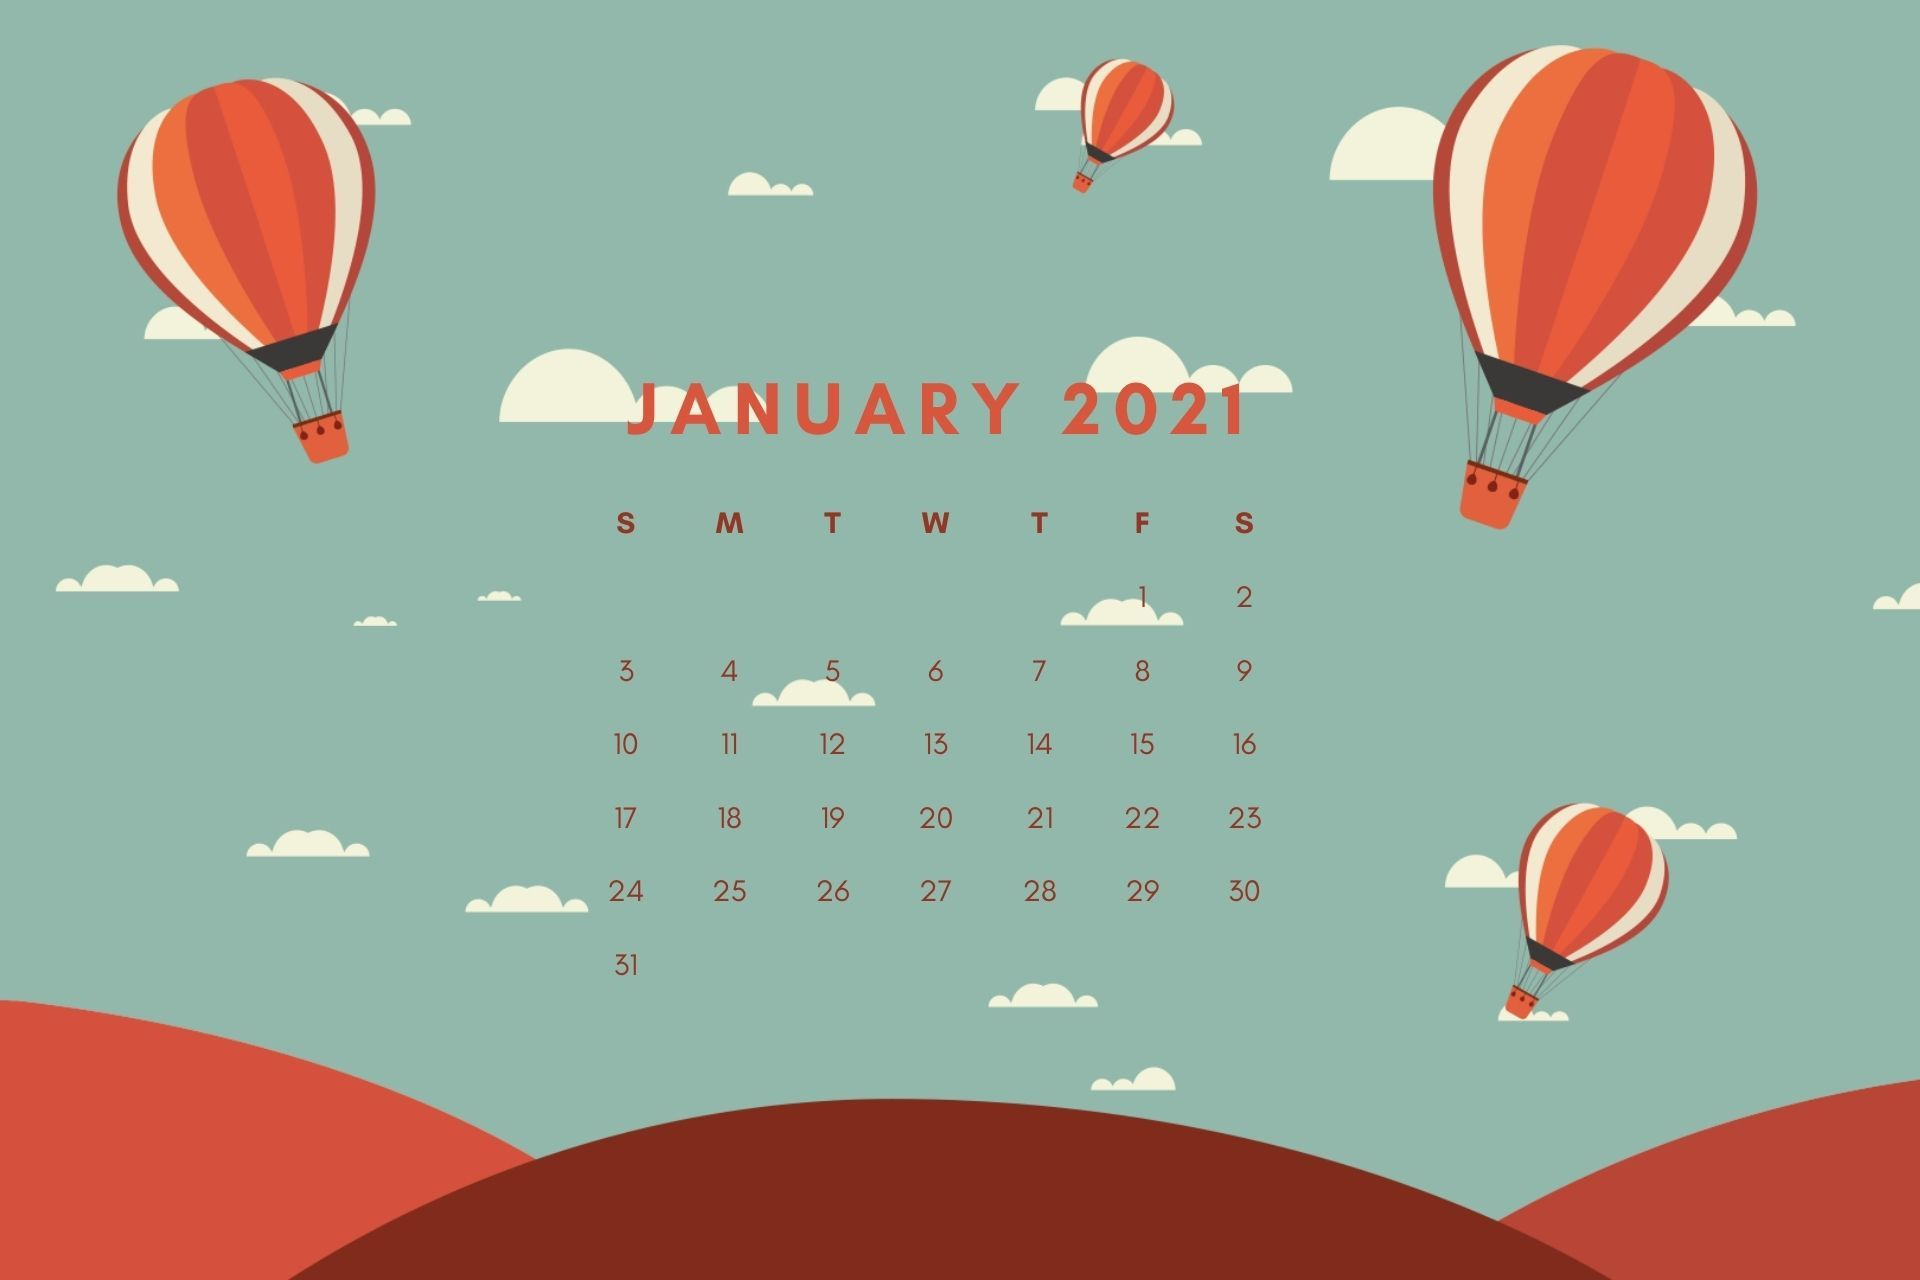 January 2021 Calendar HD Wallpaper Download | Desktop wallpaper